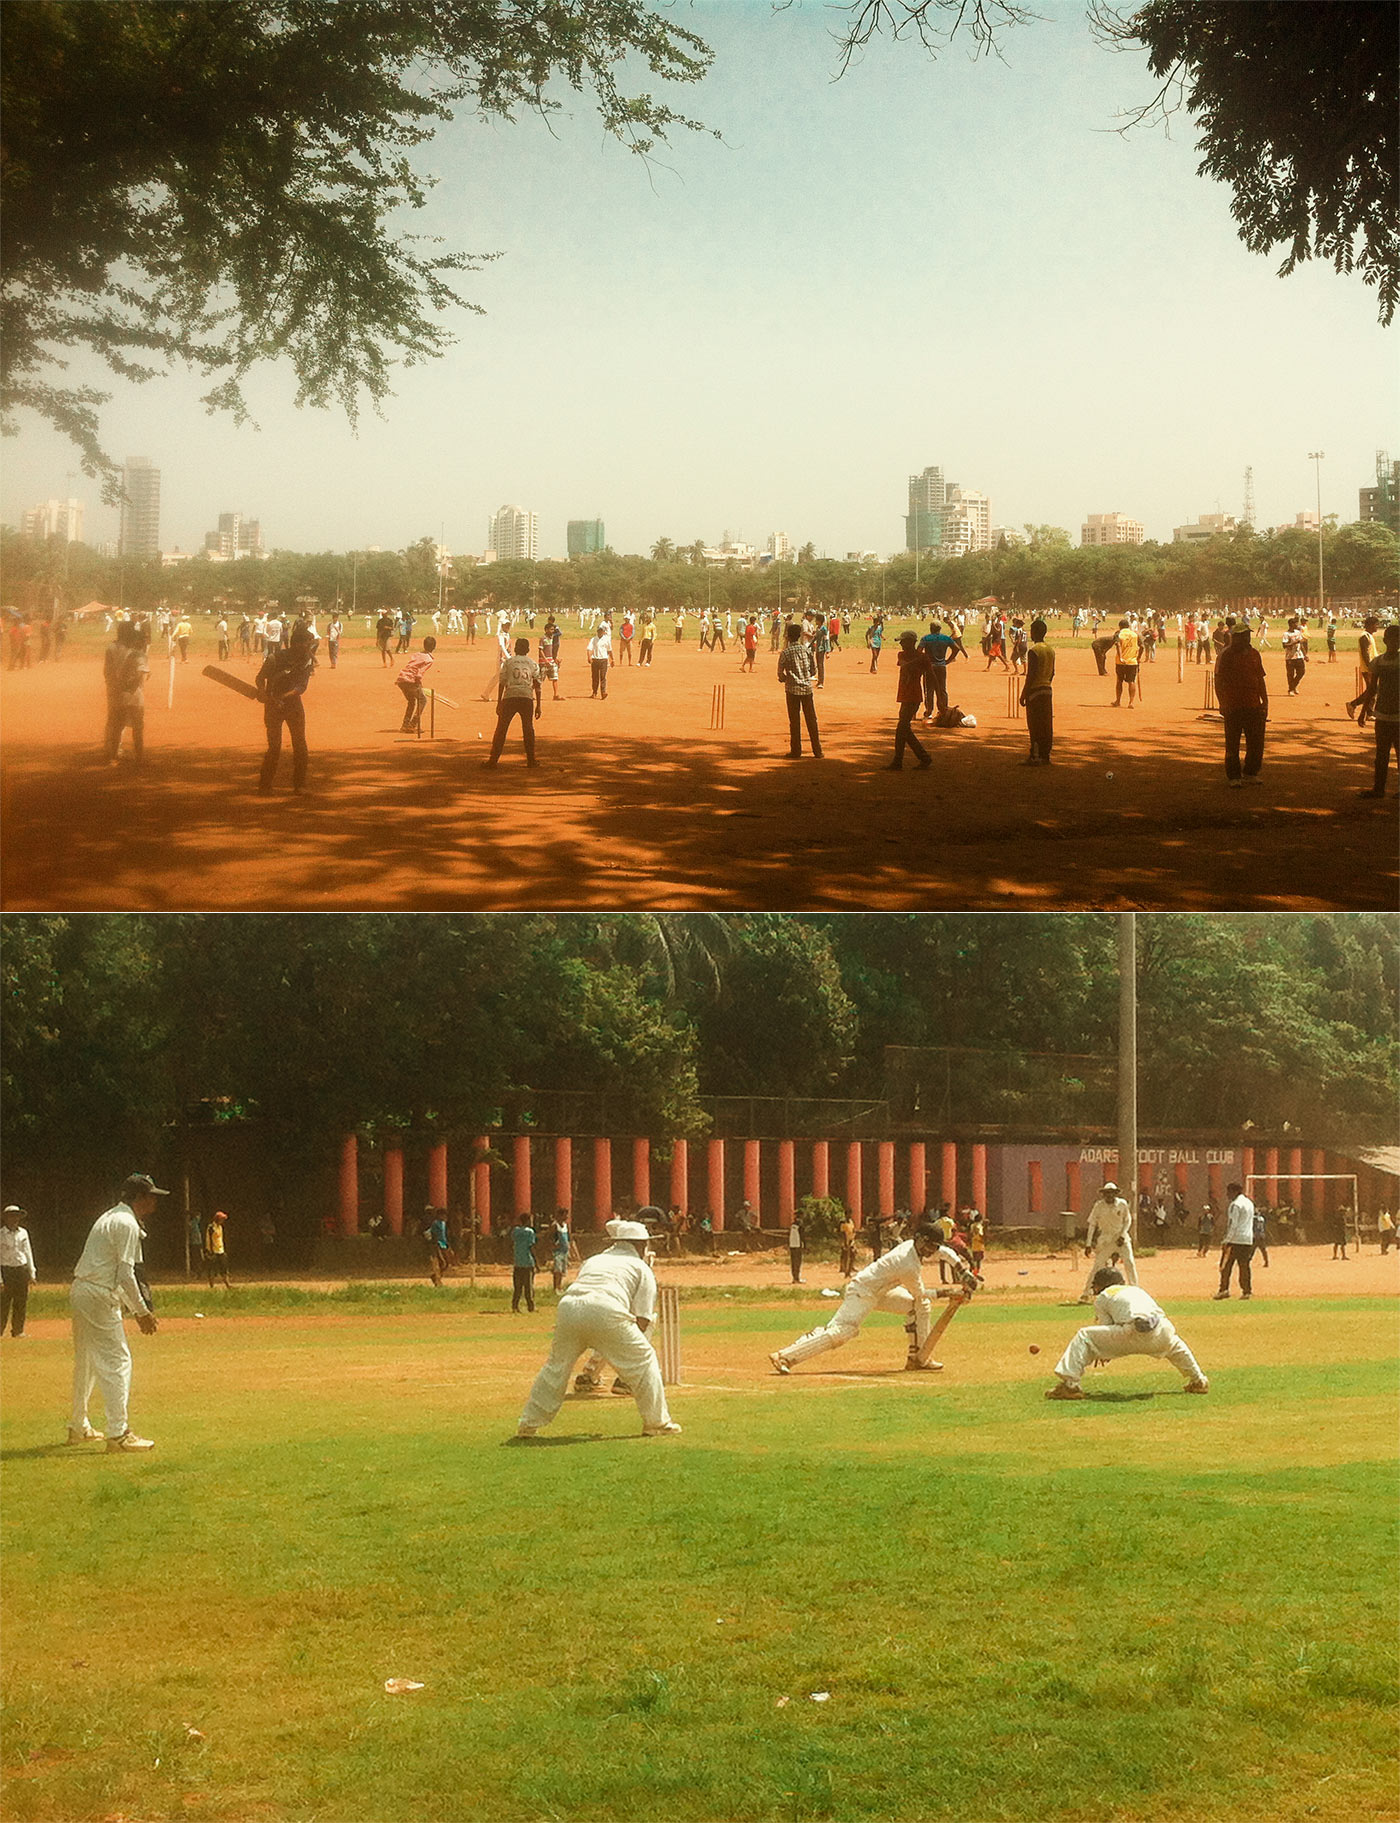 Bat-ball ballads: Mumbai's maidans host cricket matches with all sorts of rules; but the forward defensive (below) isn't forgotten either